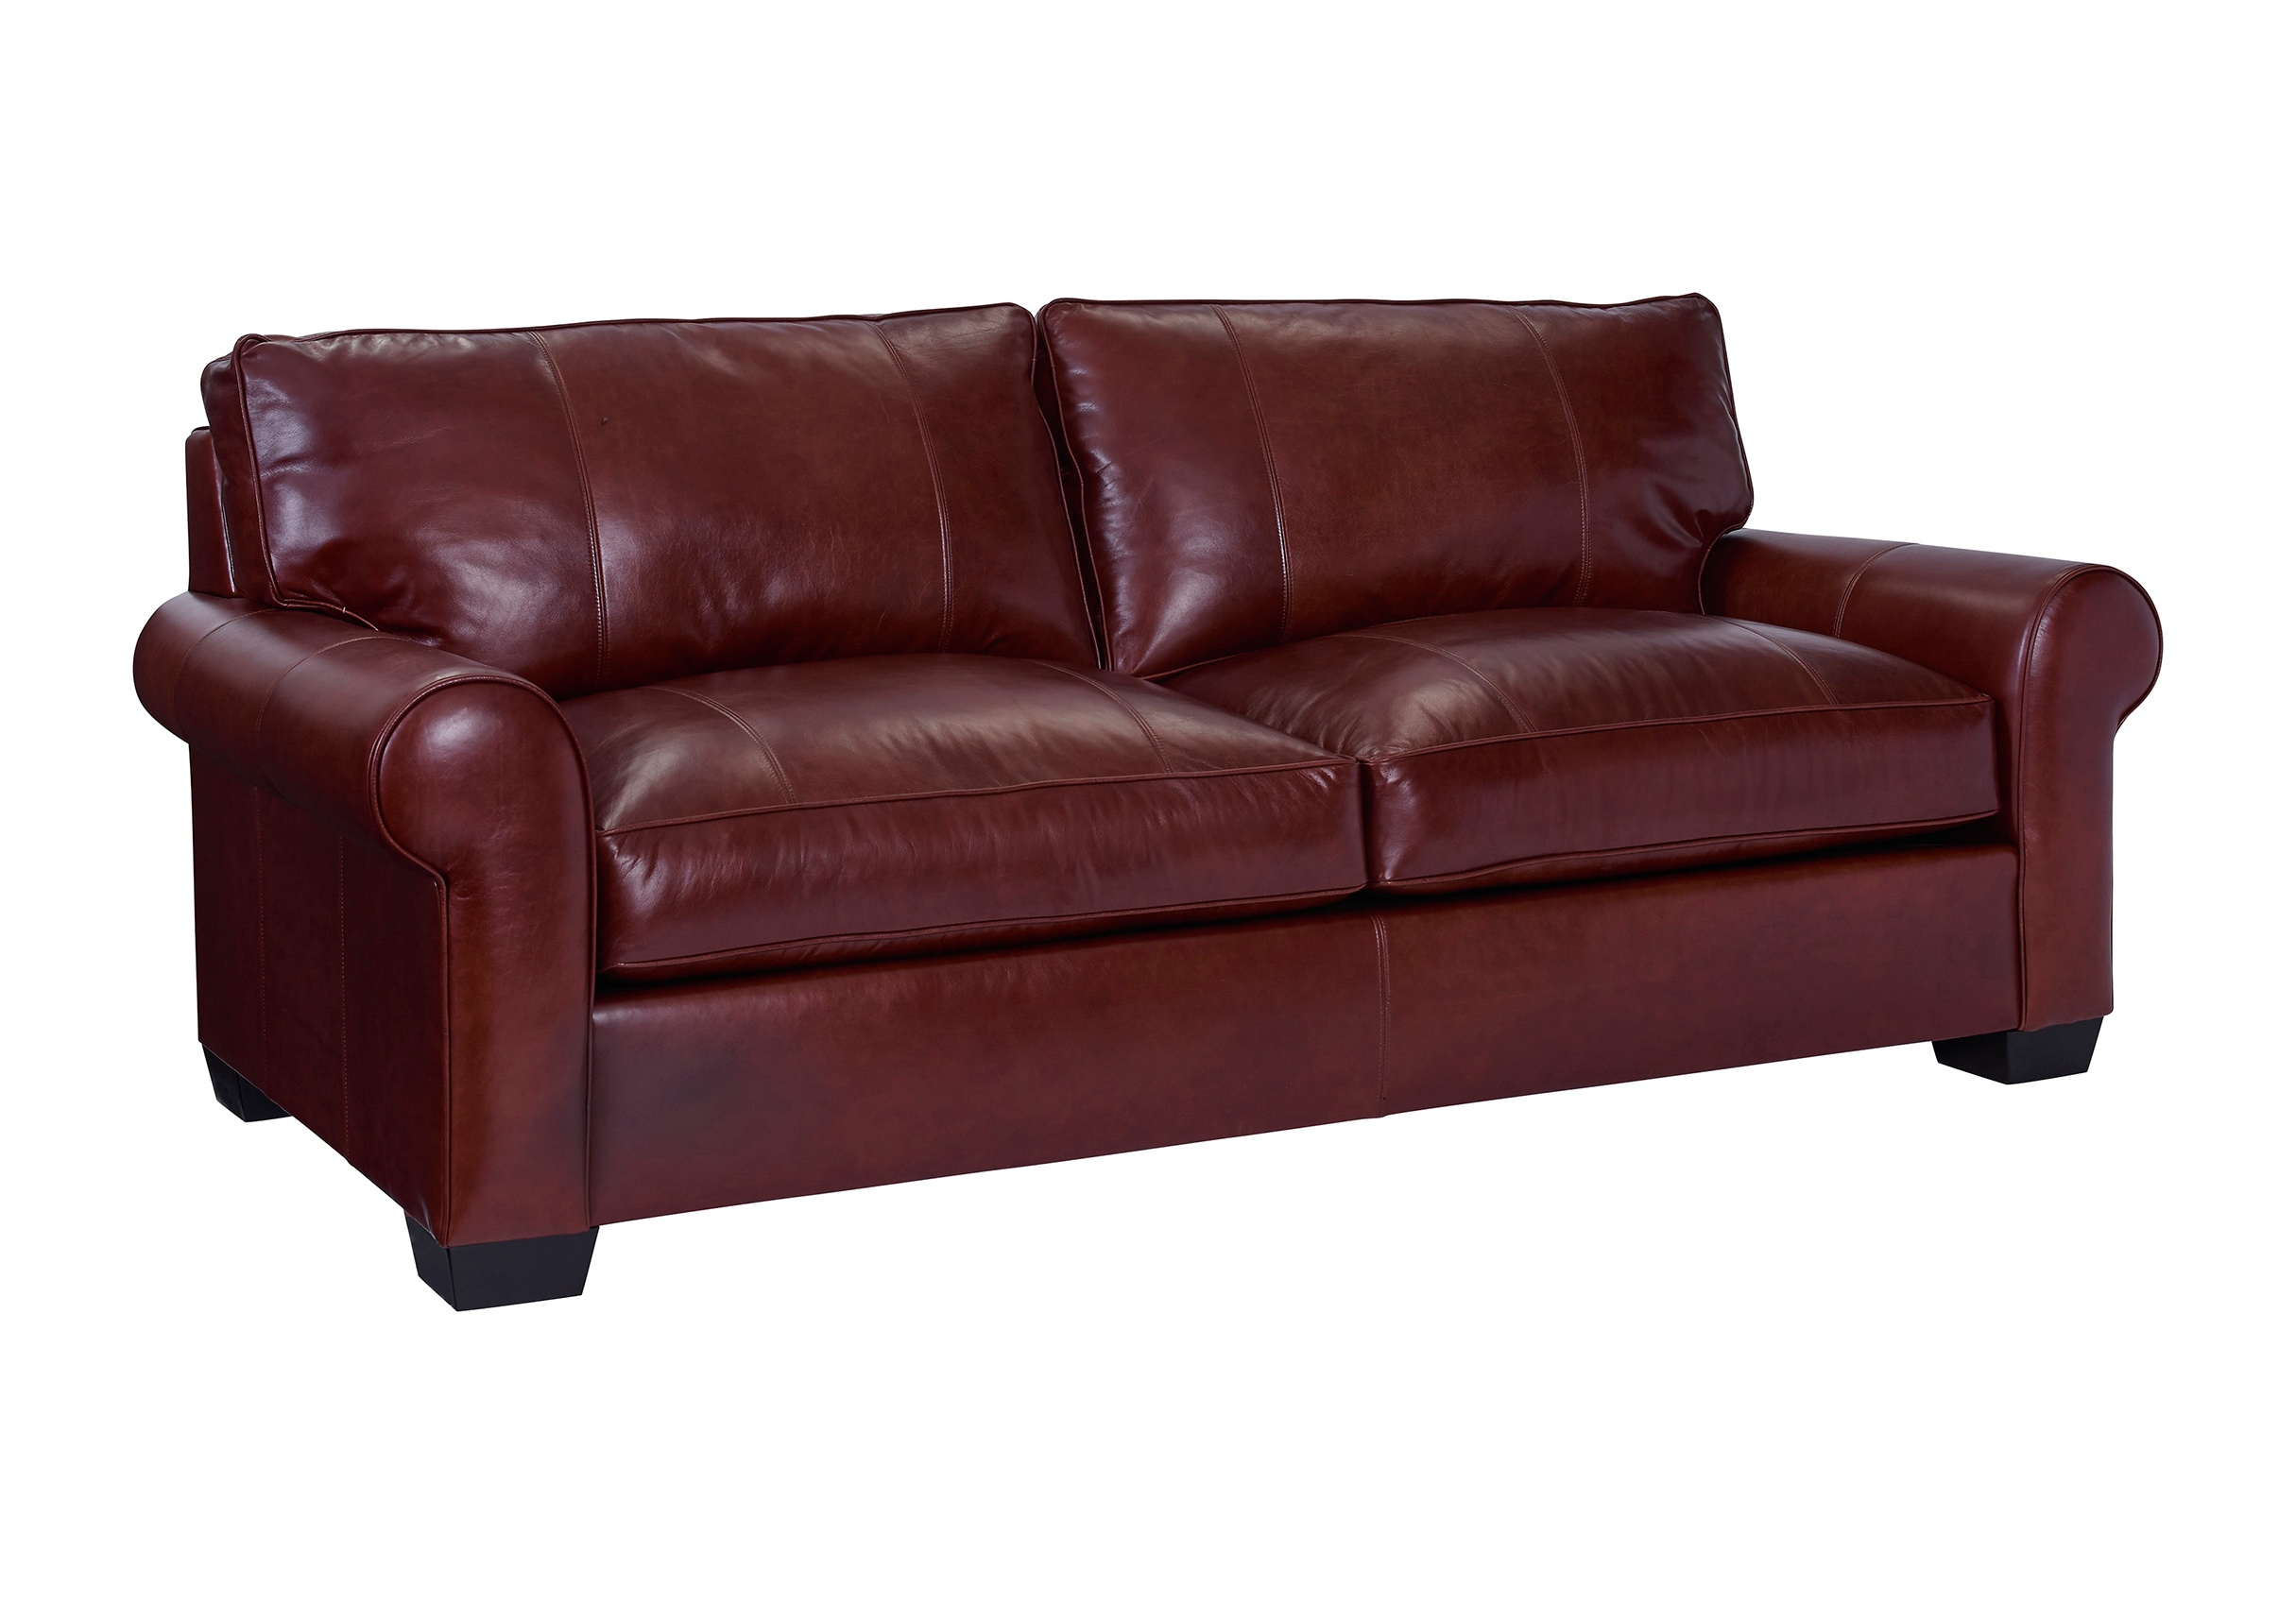 Incredible Isadore 4272 Sofa Collection Customize 350 Sofas And Alphanode Cool Chair Designs And Ideas Alphanodeonline